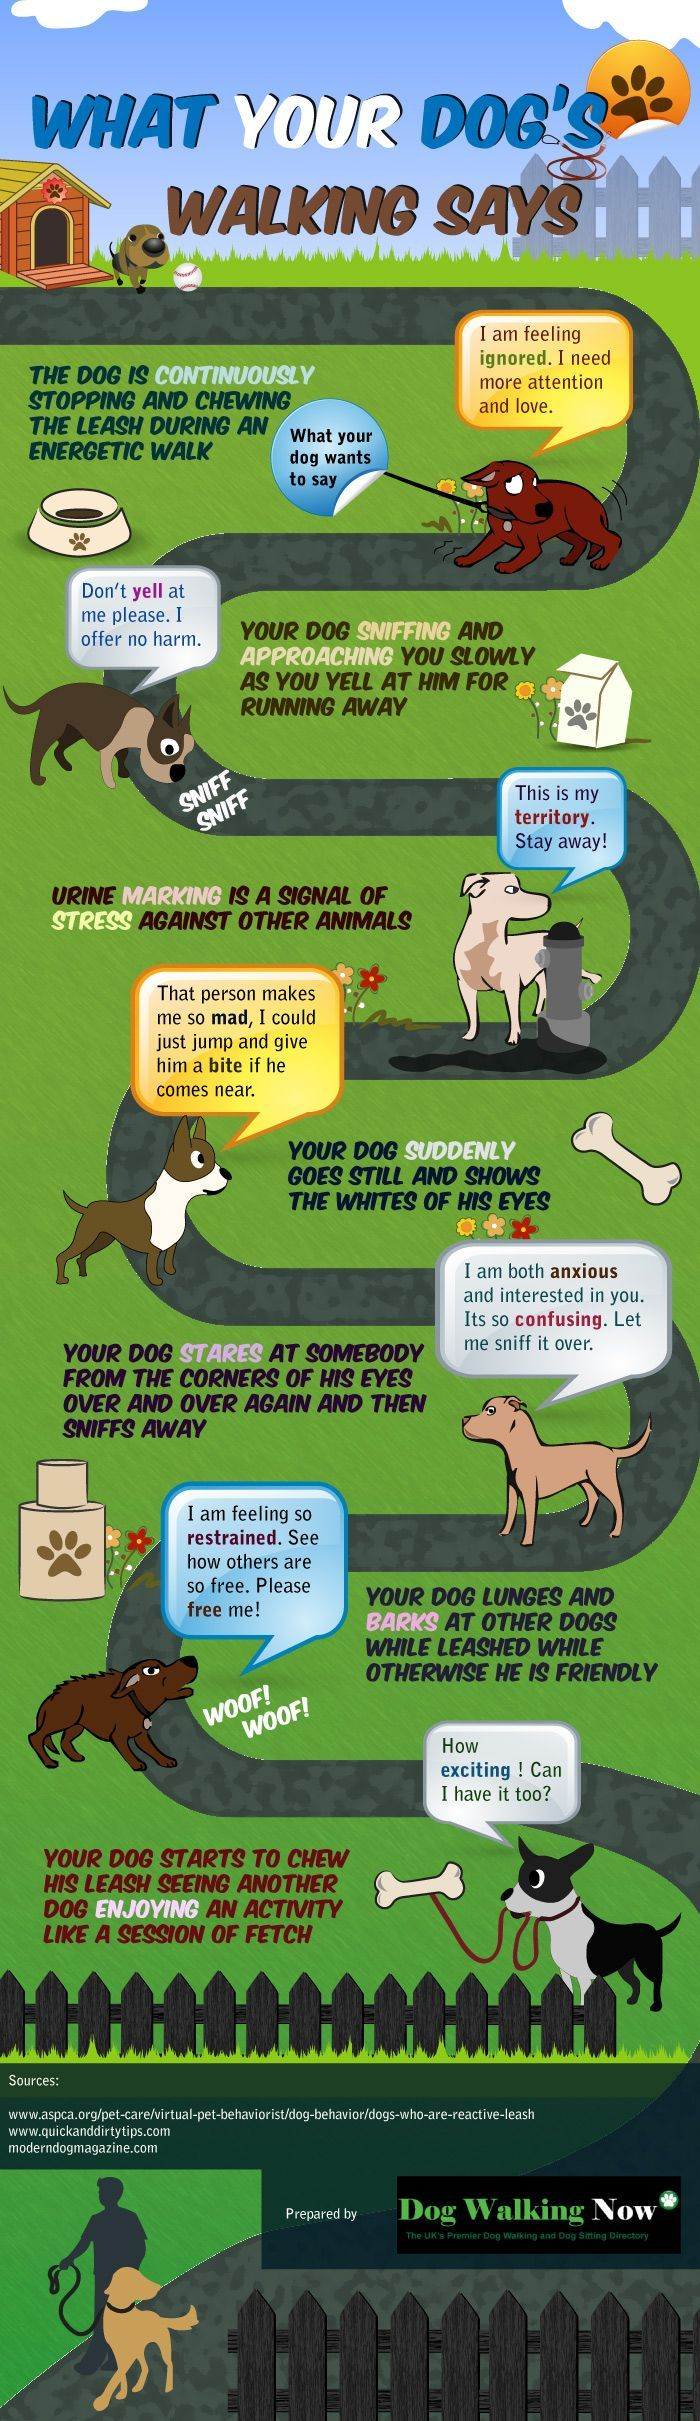 Interesting #infographic that digs deep into the psychology of showing what your dog wants to communicate while walking it